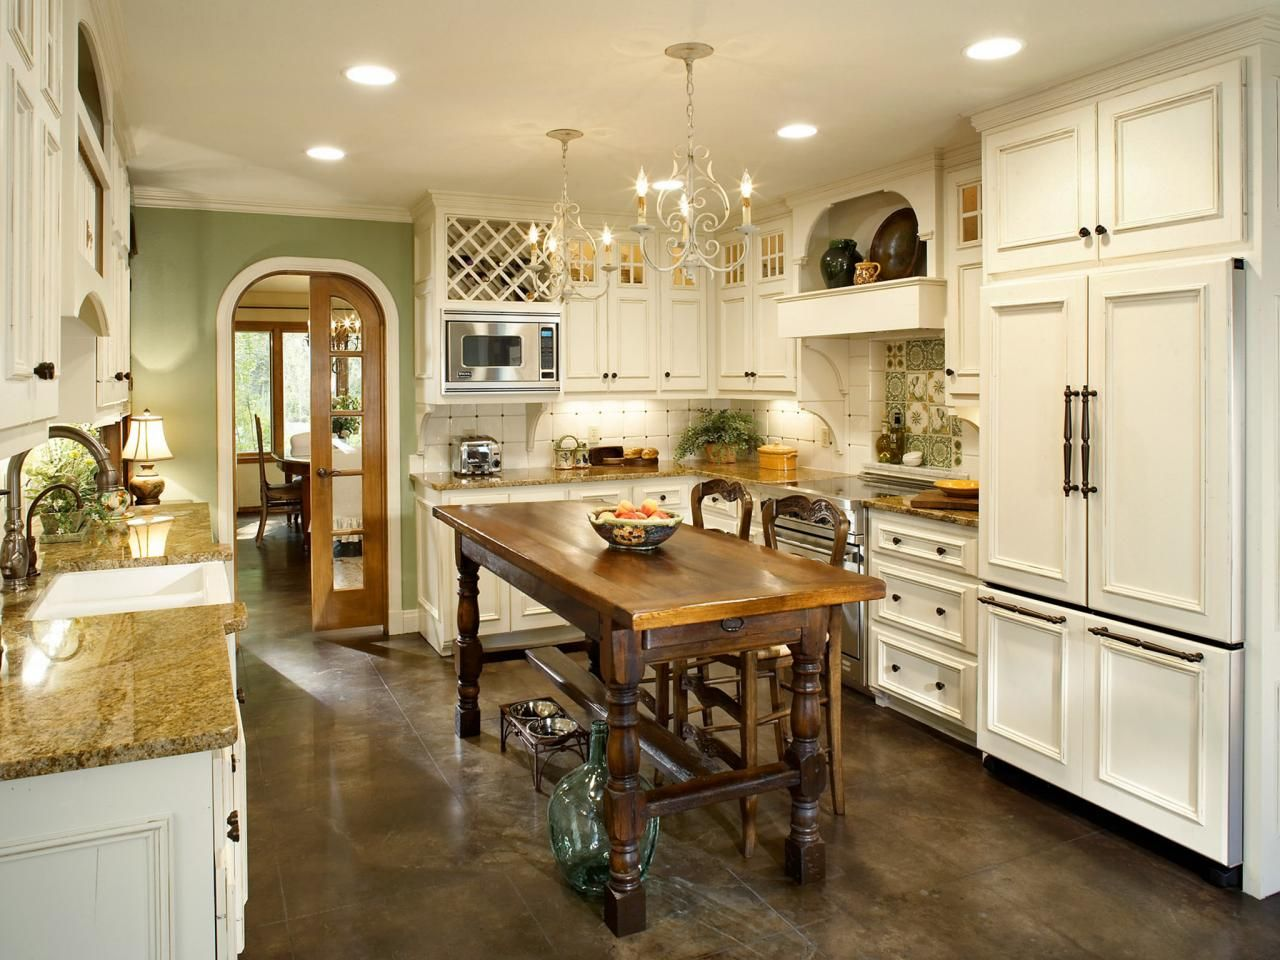 french country kitchen designs best brand for appliances makeover ideas